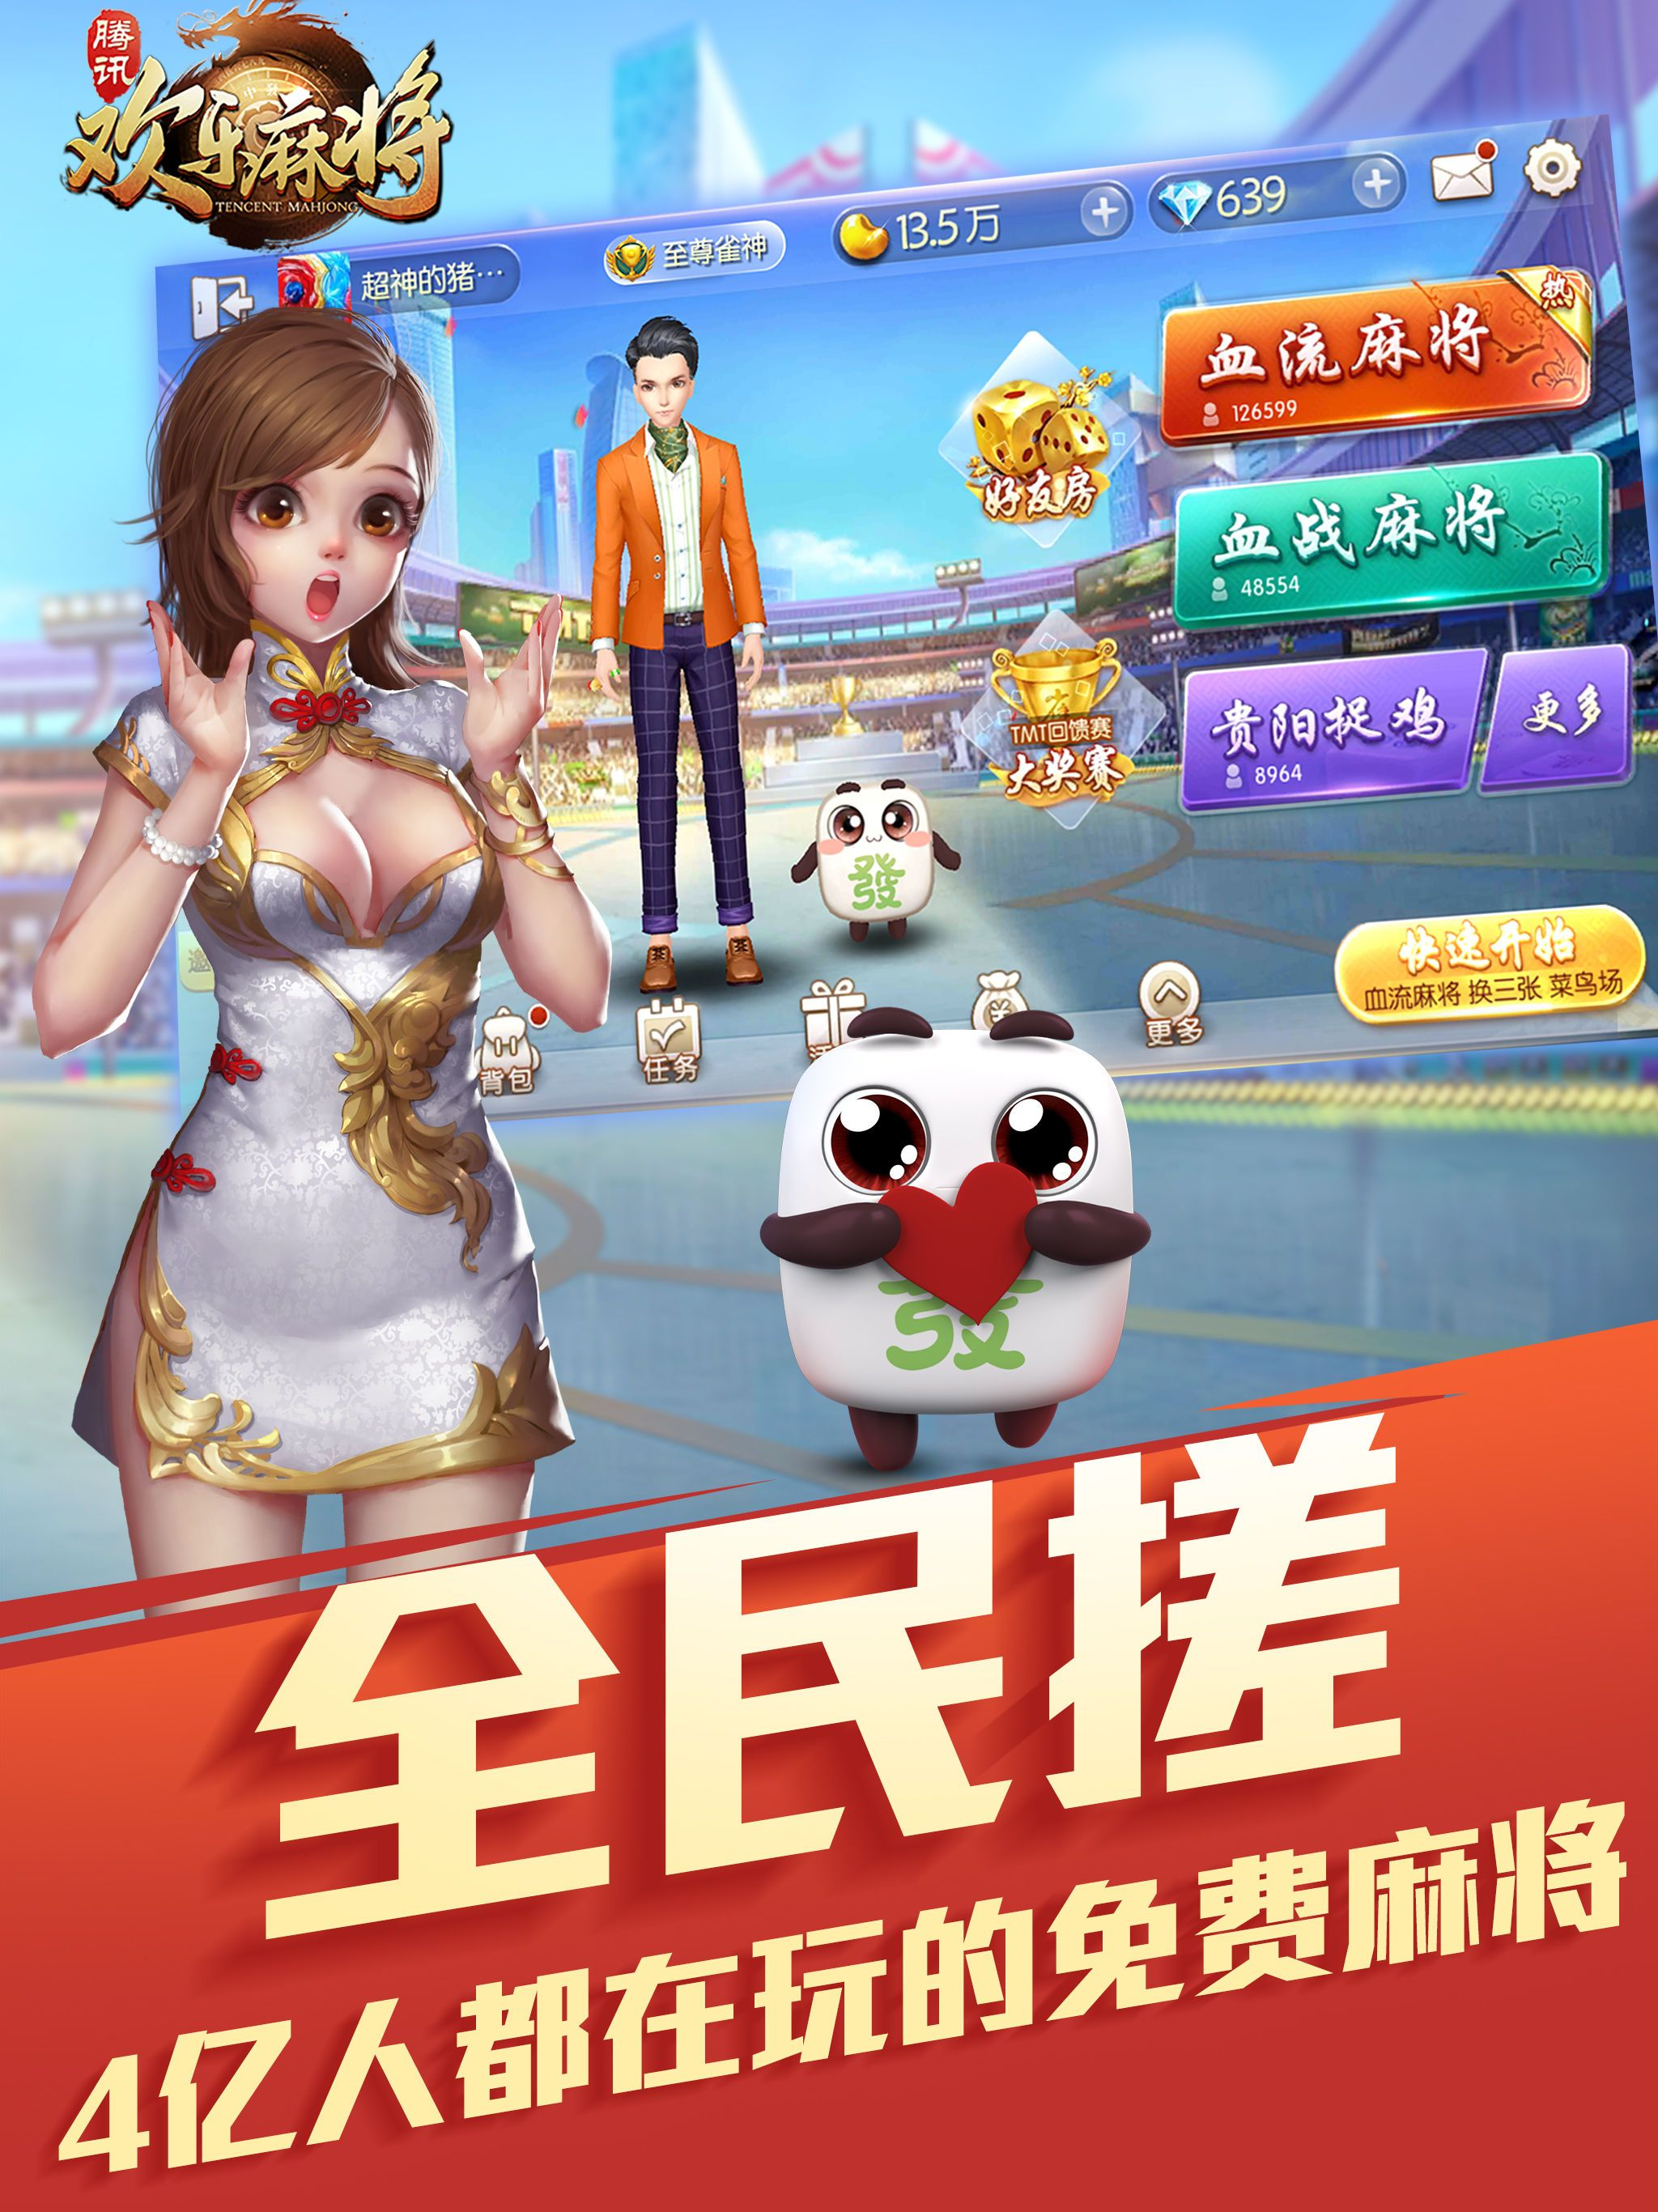 Tencent Joy Mahjong Complete Works - iOS Store Store Top